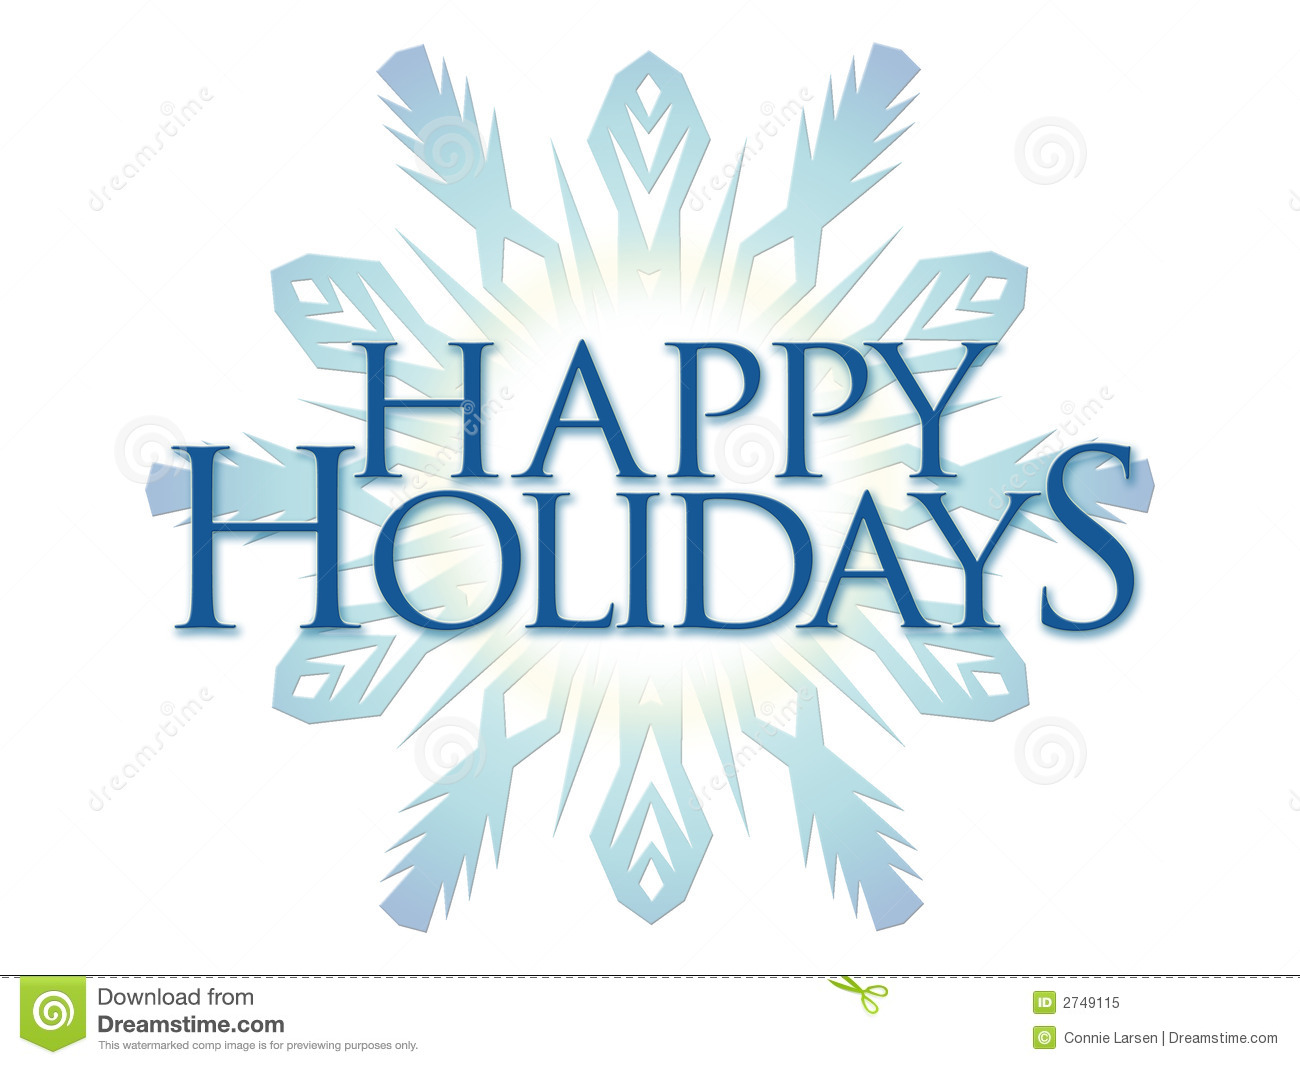 Happy Holidays Royalty Free Stock Photo.